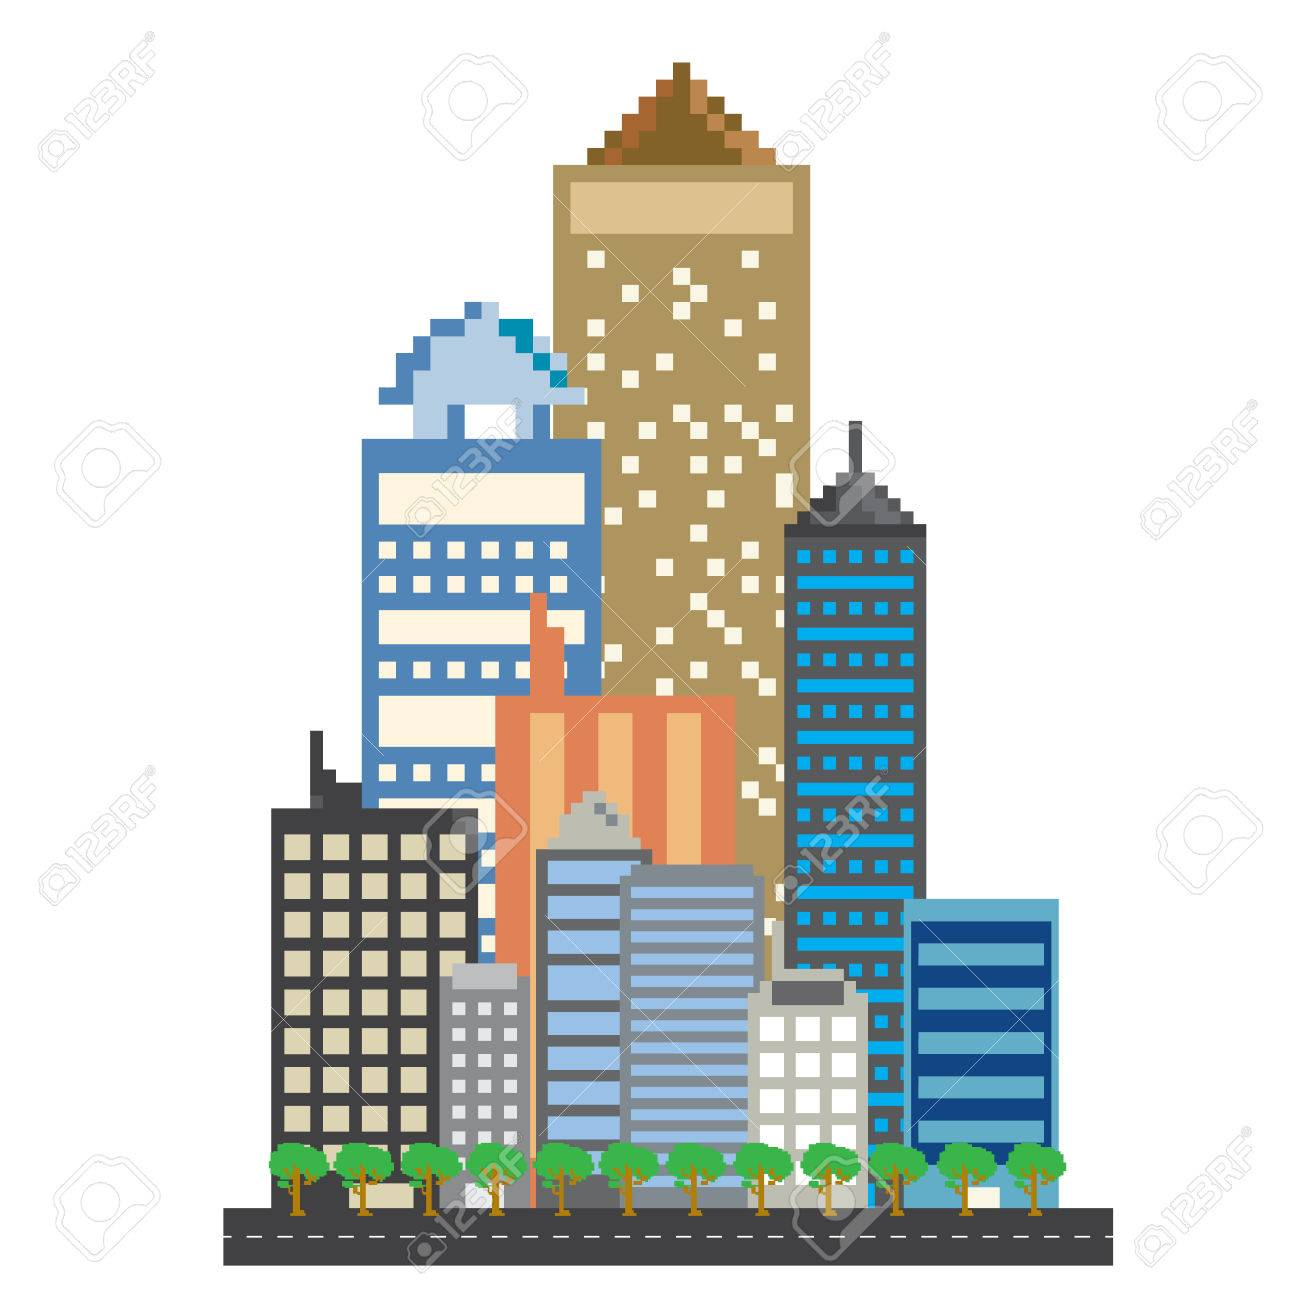 pixels art office building in the city royalty free cliparts rh 123rf com